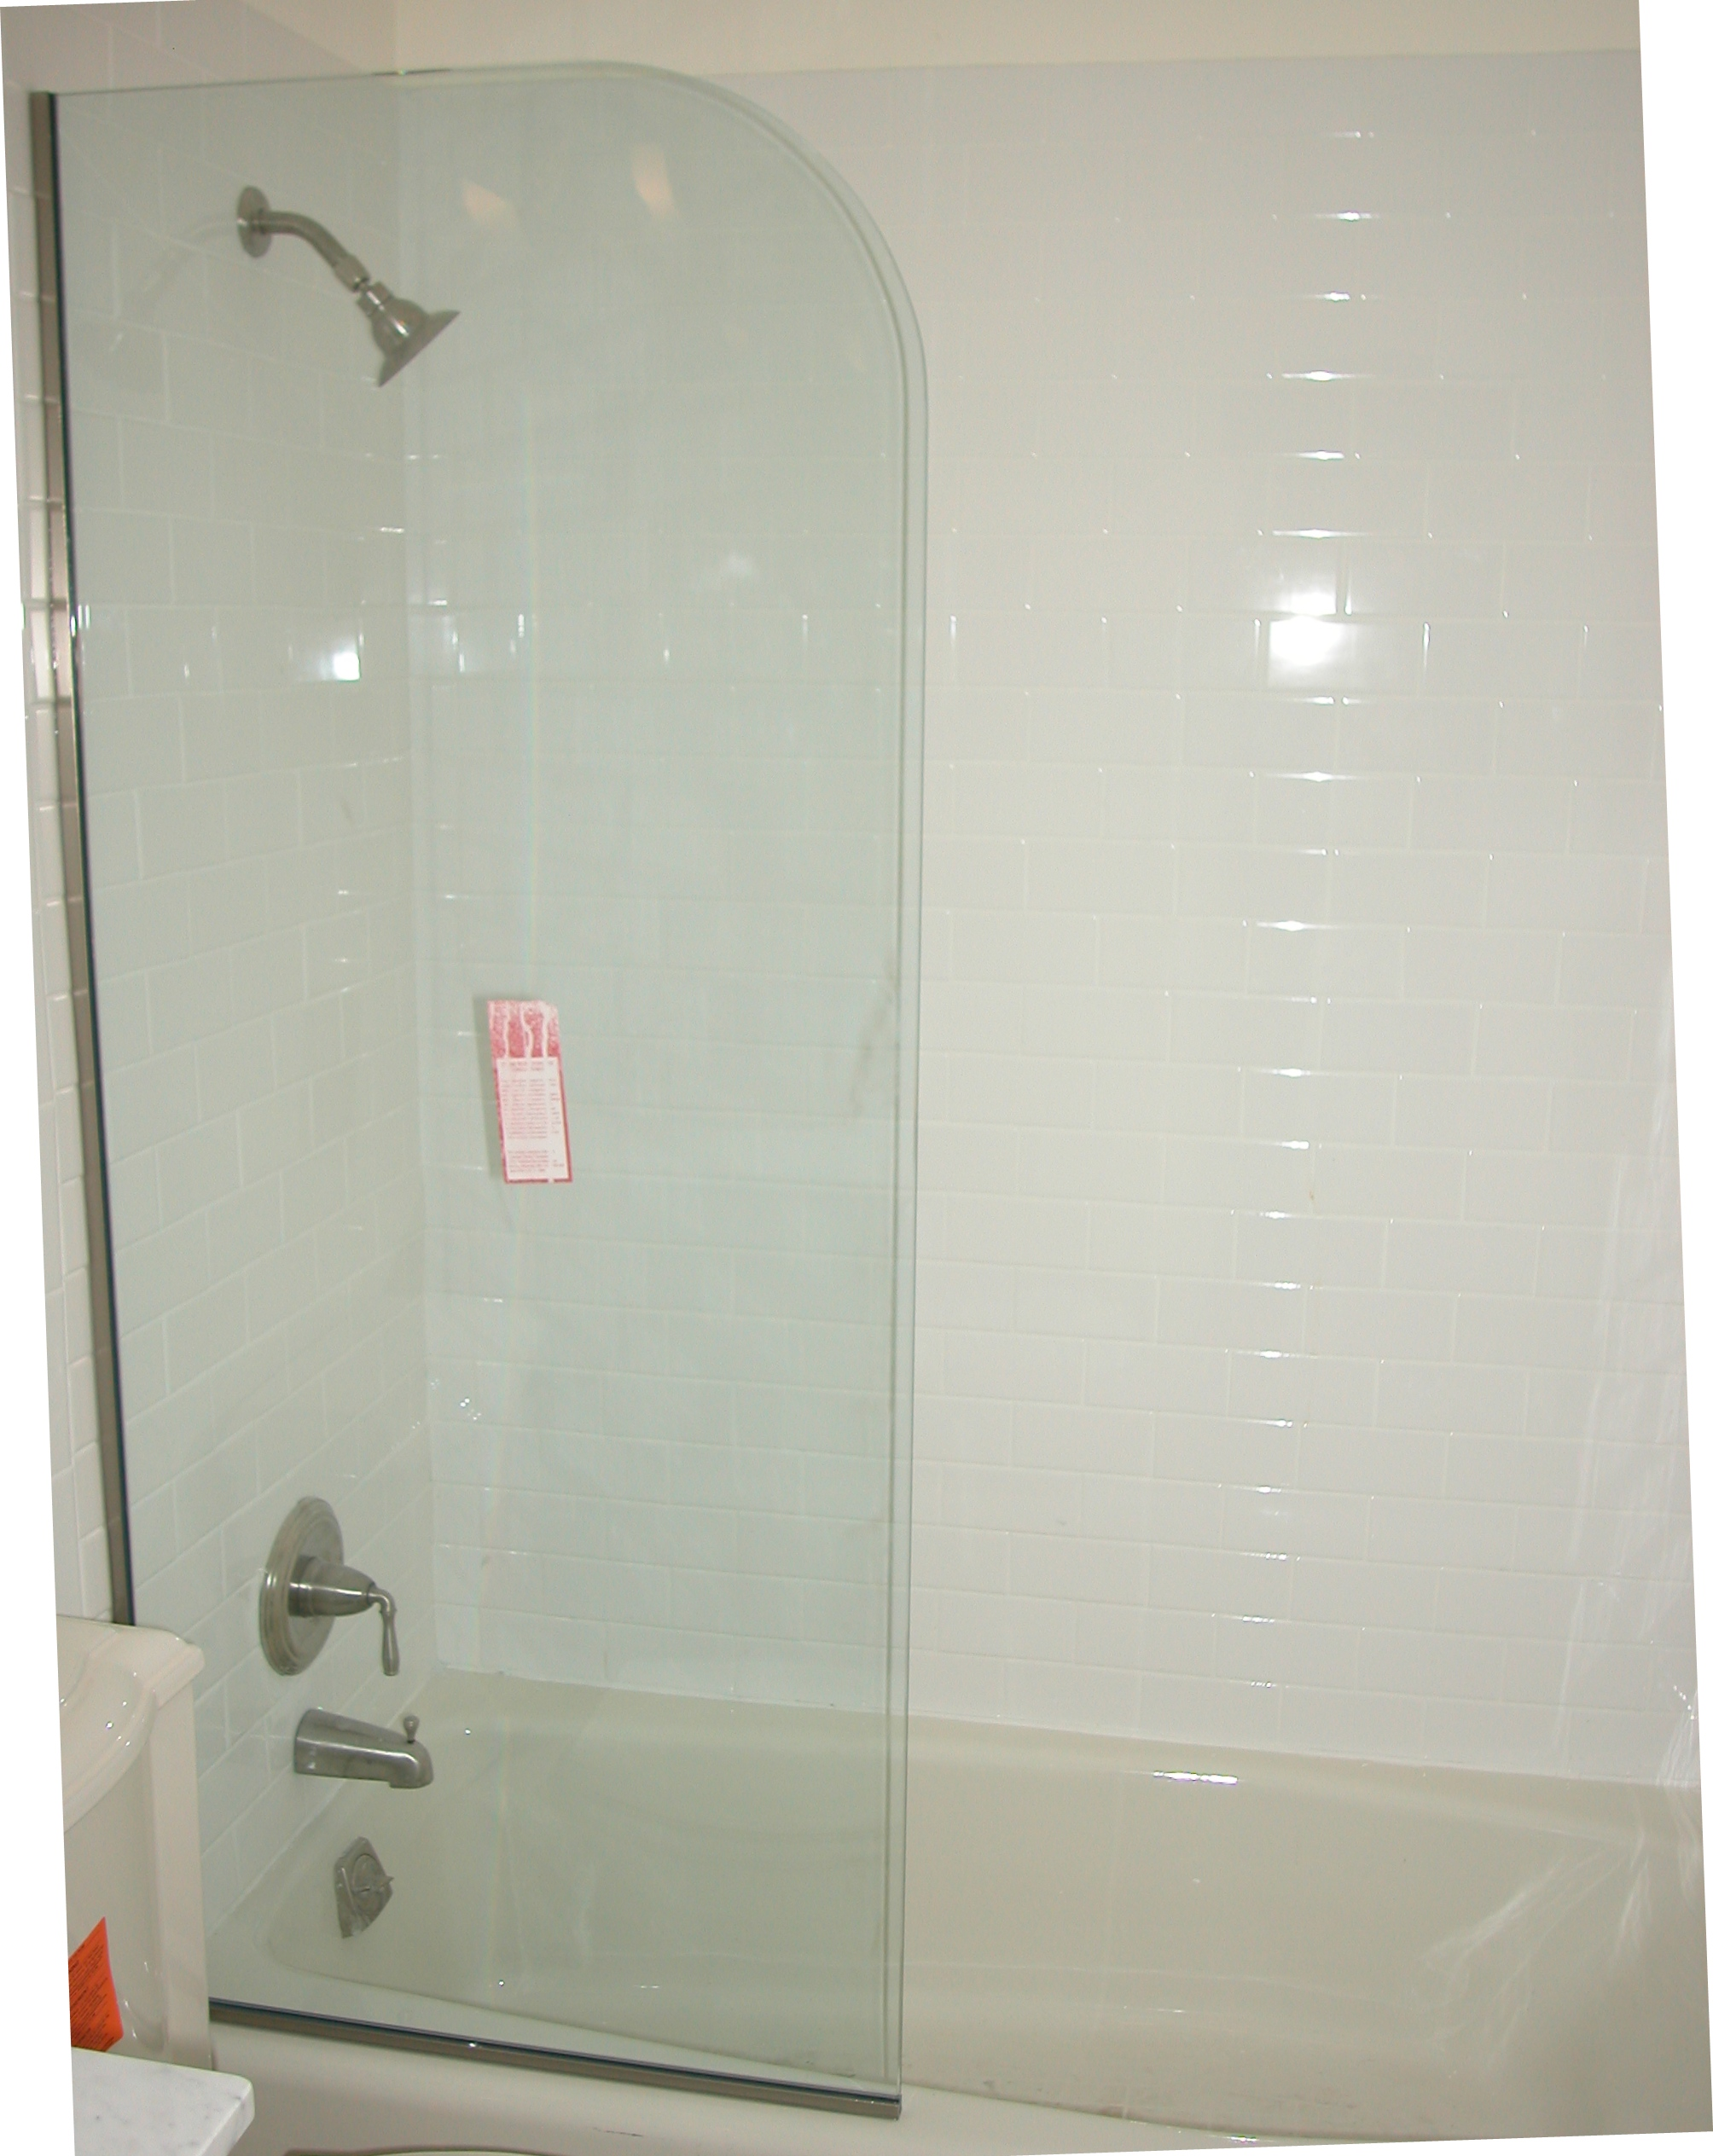 Spray panel shower door king shower door installations spray panel satin nickel hardware 38 clear glass 2 planetlyrics Gallery